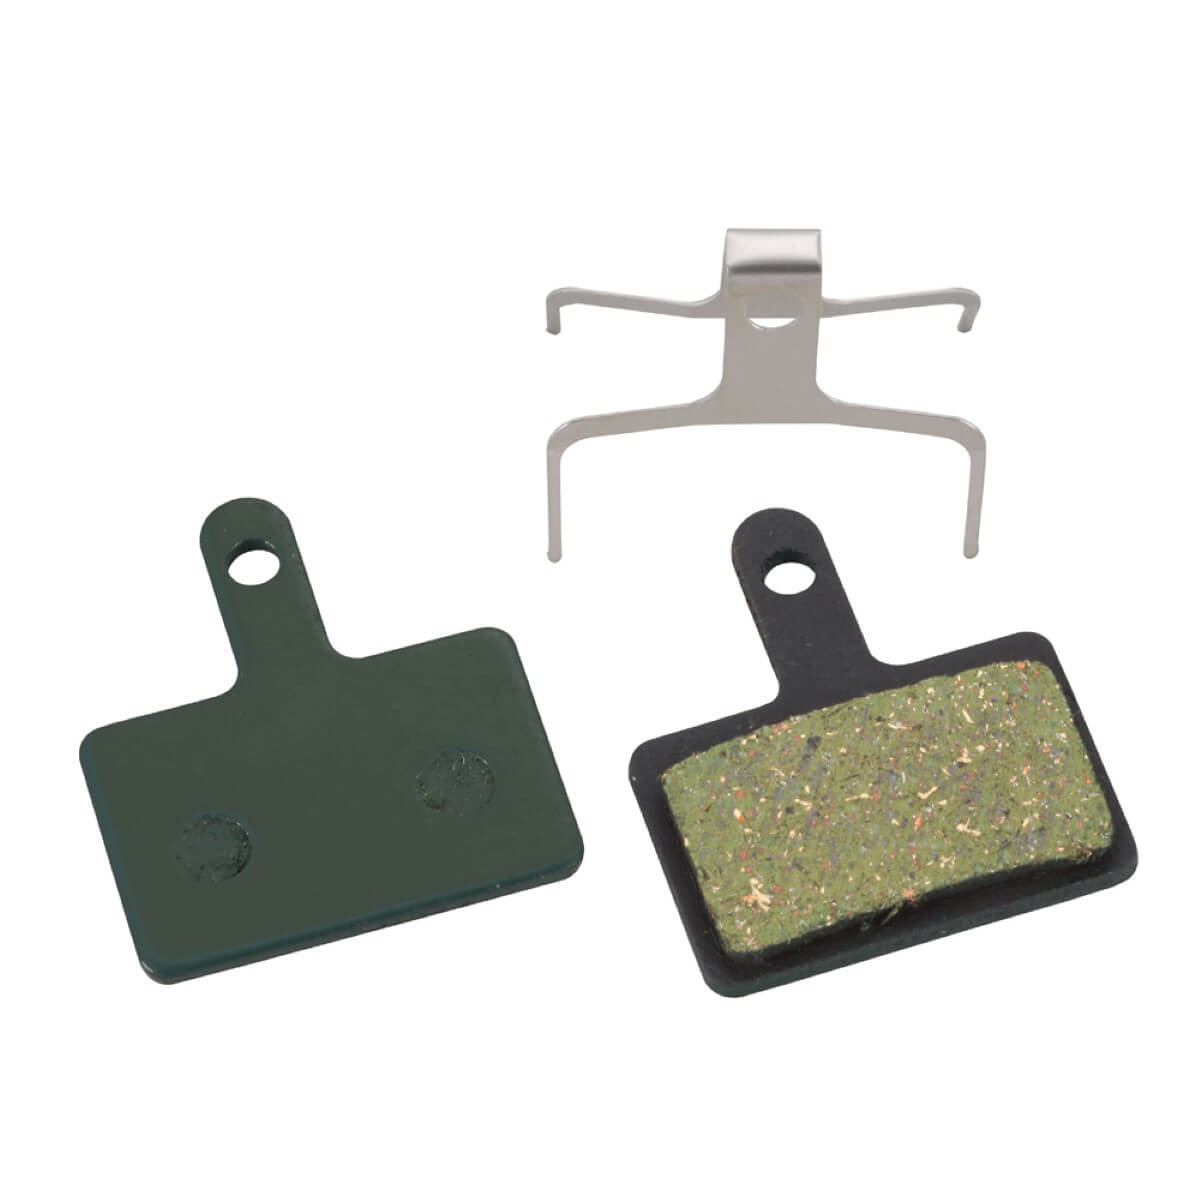 DBP-10E E-bike Disk Brake Pads with KEVLAR for Shimano Deore